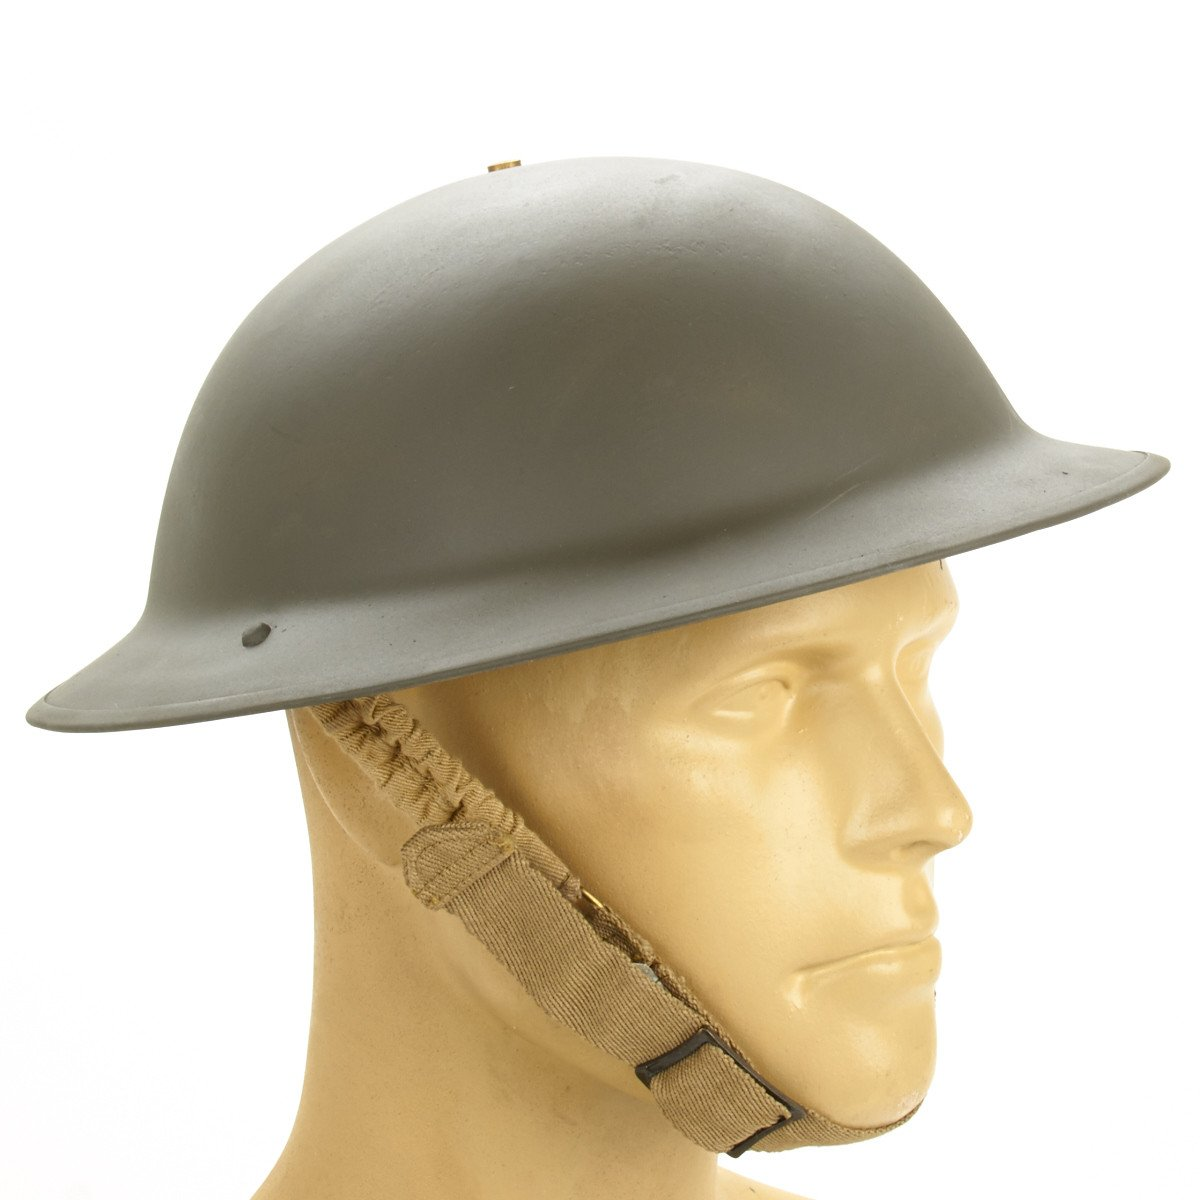 List of Synonyms and Antonyms of the Word: British Helmet